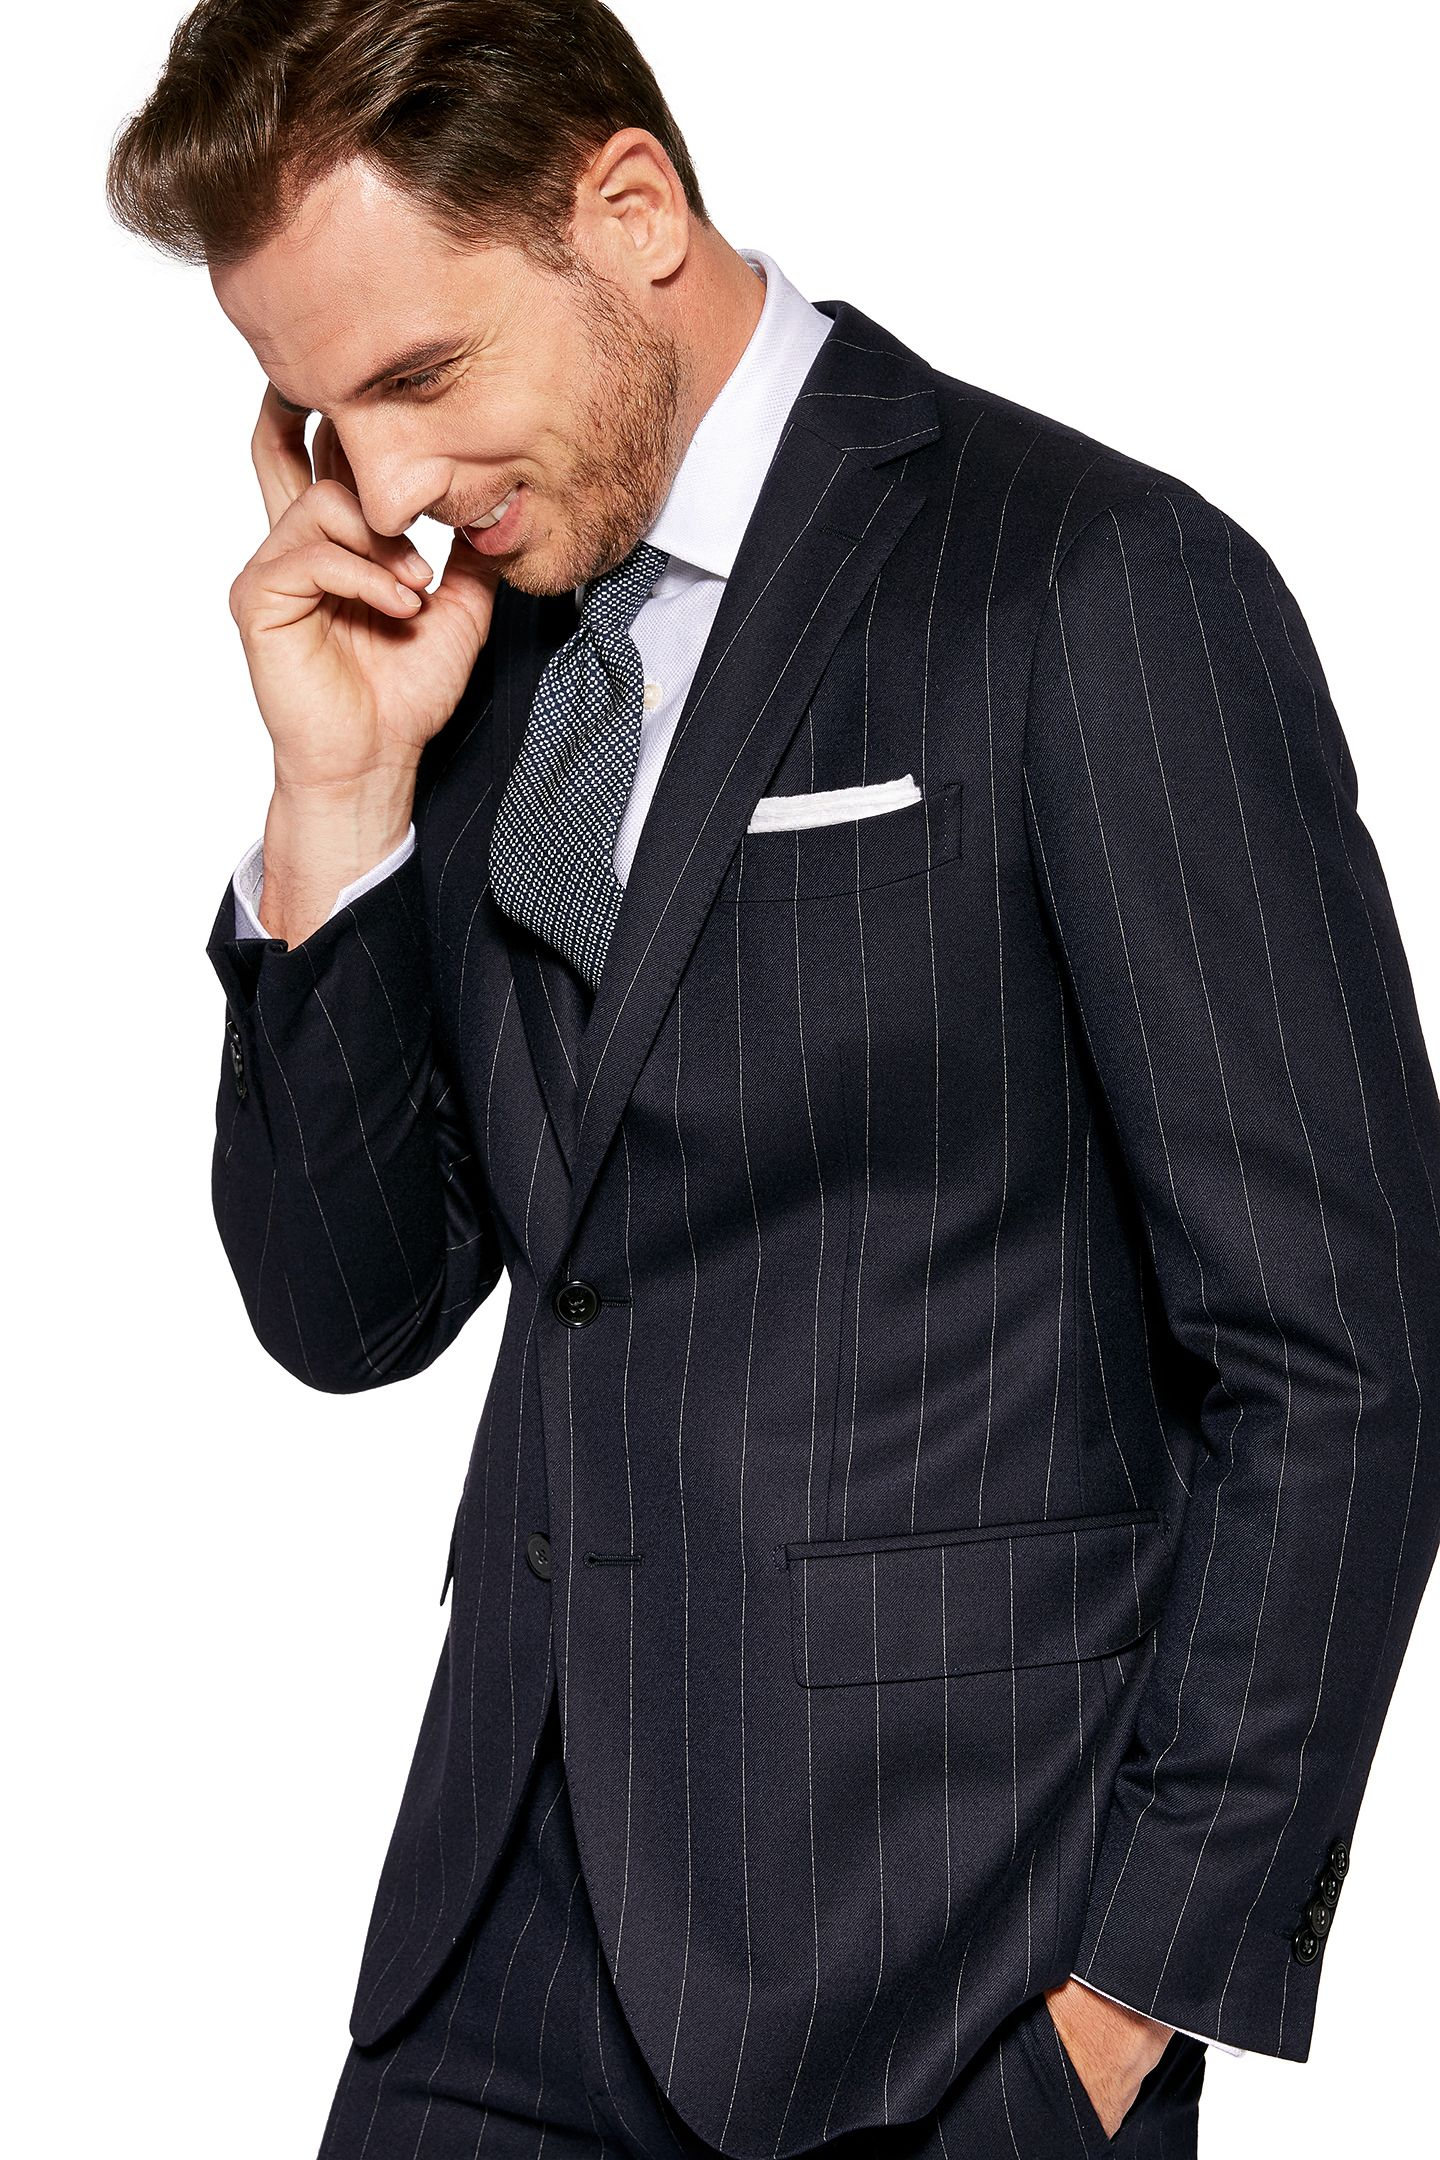 WIDE PINSTRIPE SUIT , SUPER 130 WOOL , MADE IN ITALY, Navy